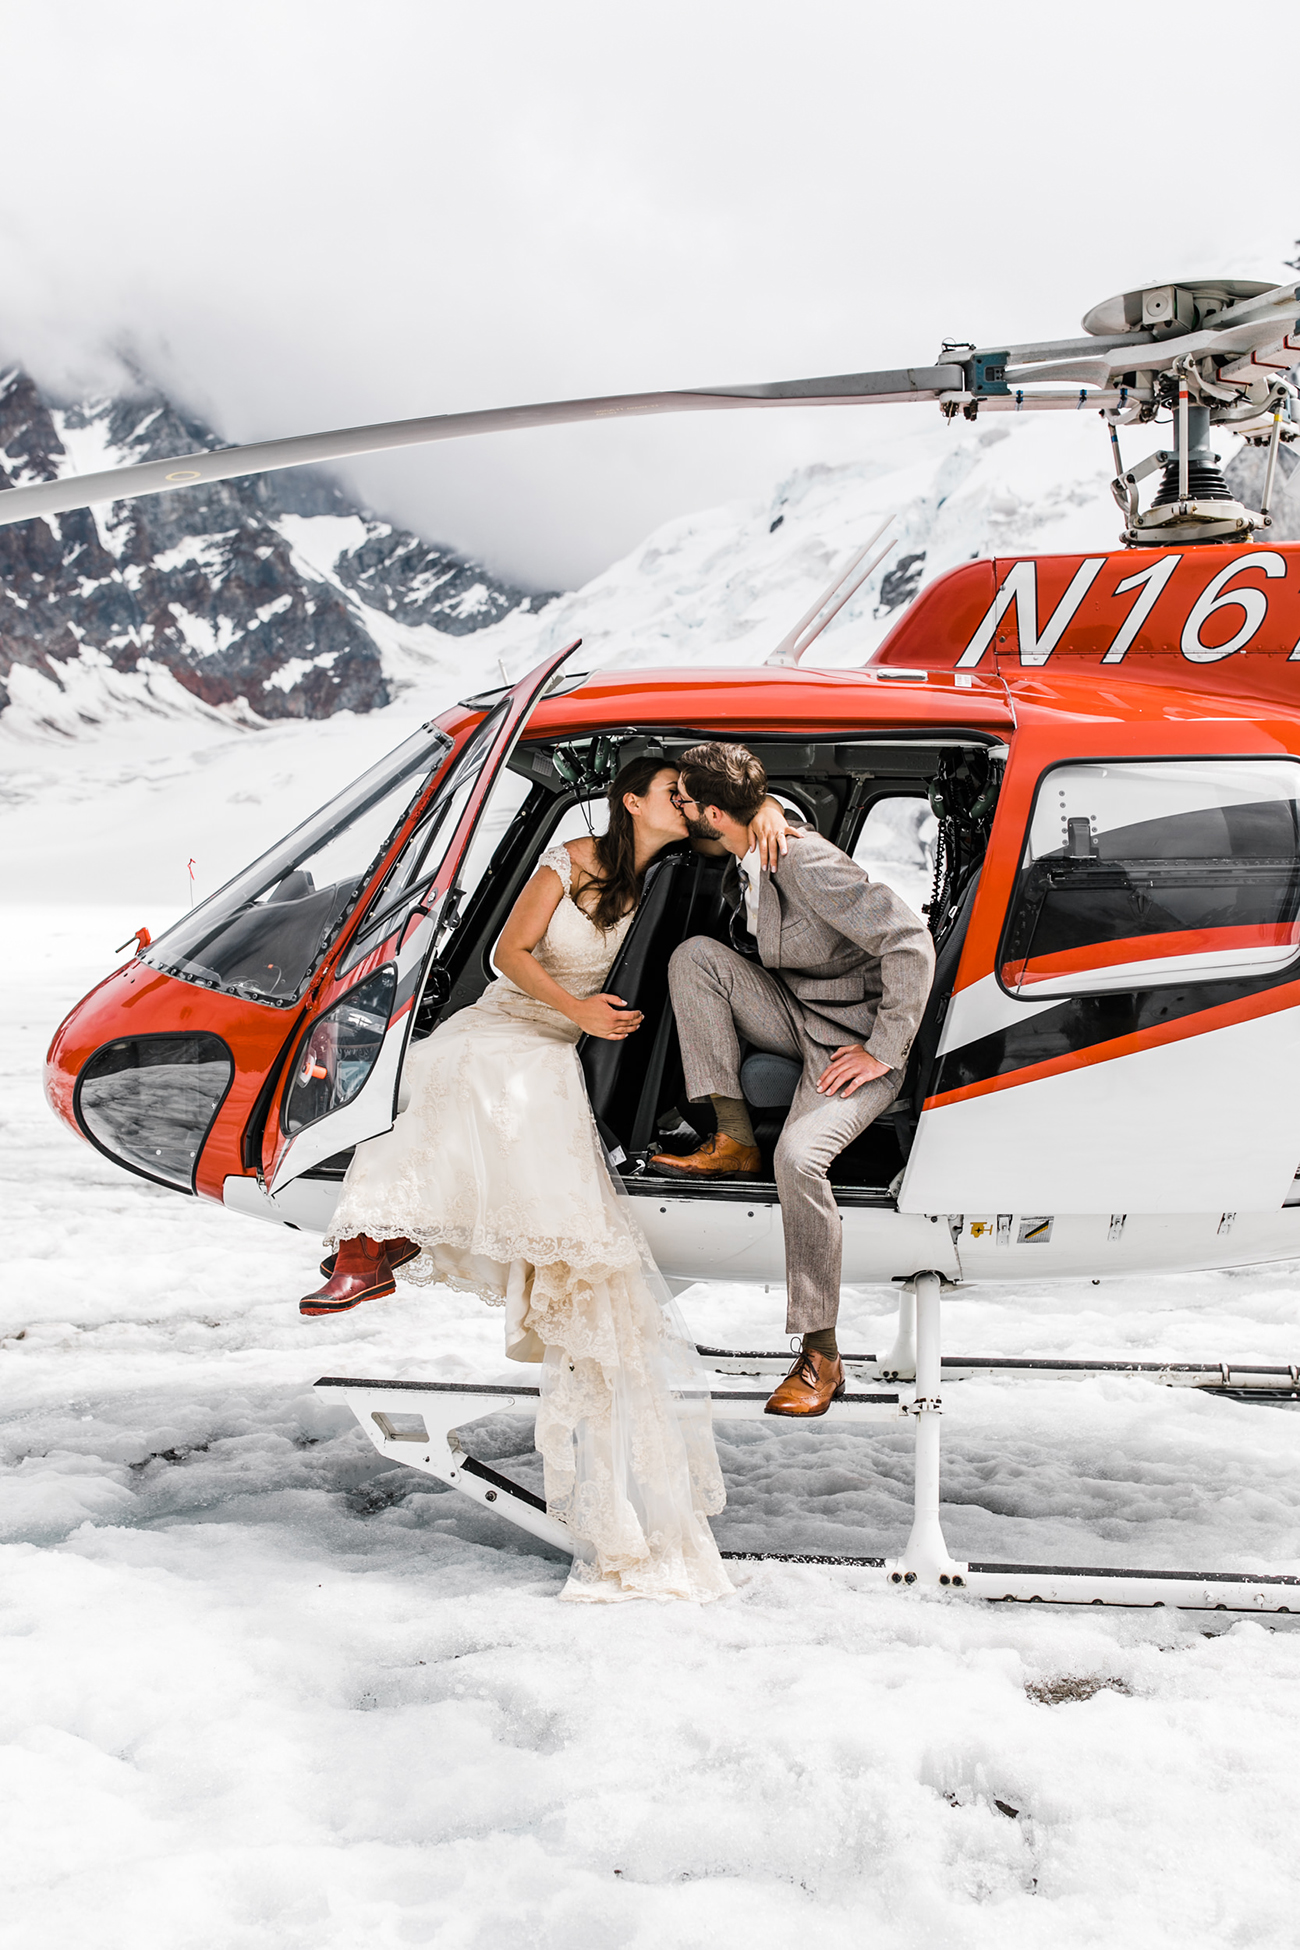 Denali National Park Helicopter Tour Wedding Glacier Landing Hearnes Elopement Photography